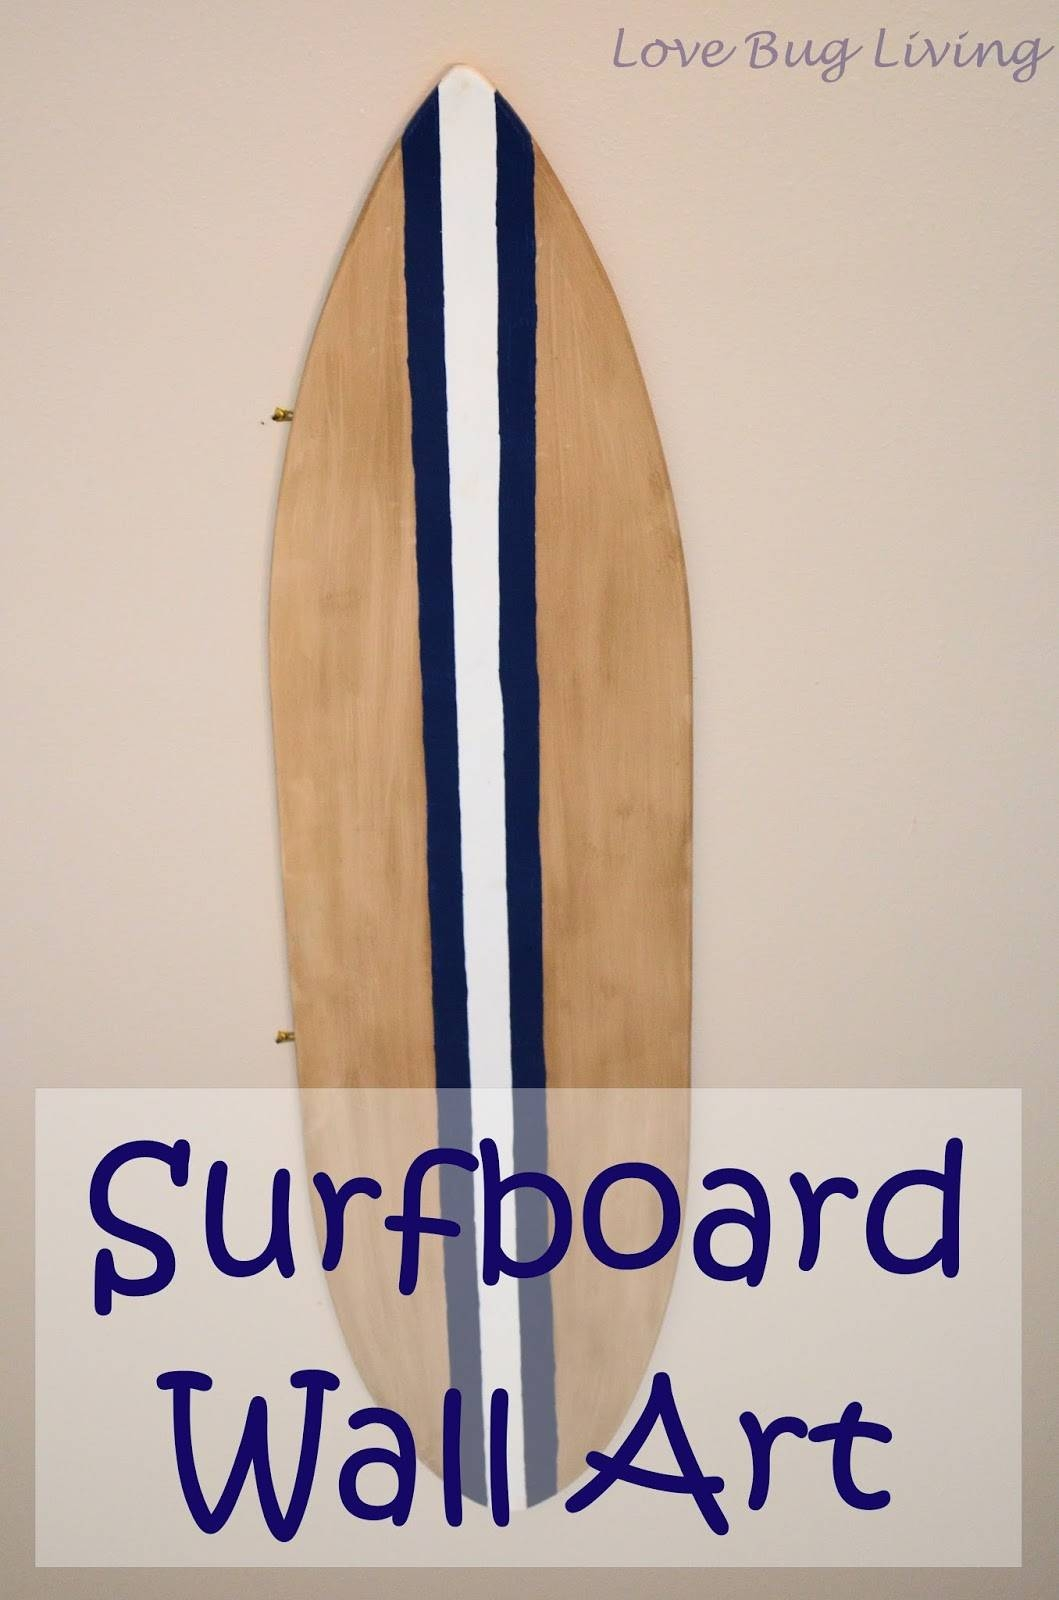 Love Bug Living: Surfboard Wall Art With Regard To 2018 Decorative Surfboard Wall Art (View 17 of 25)